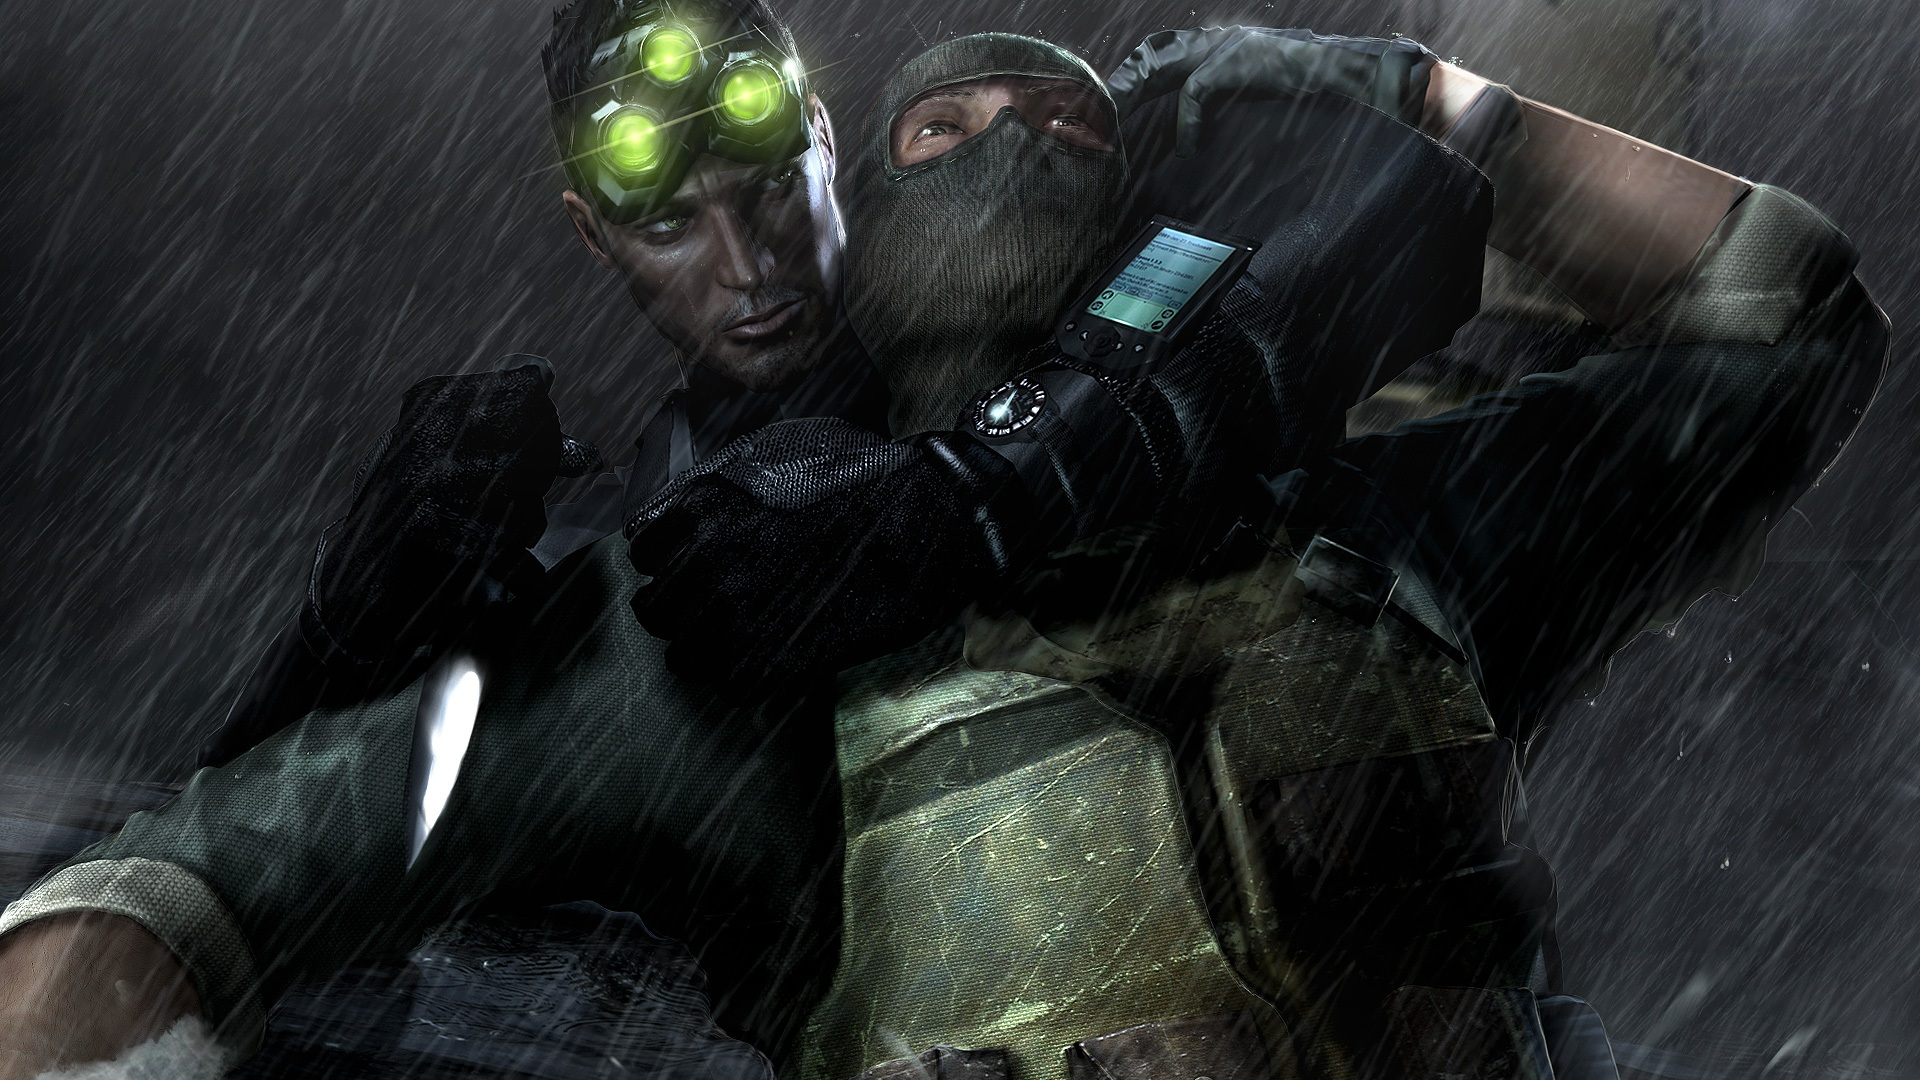 Tom clancy 39 s splinter cell chaos theory hd wallpaper background image 1920x1080 id 91009 - Chaos wallpaper ...